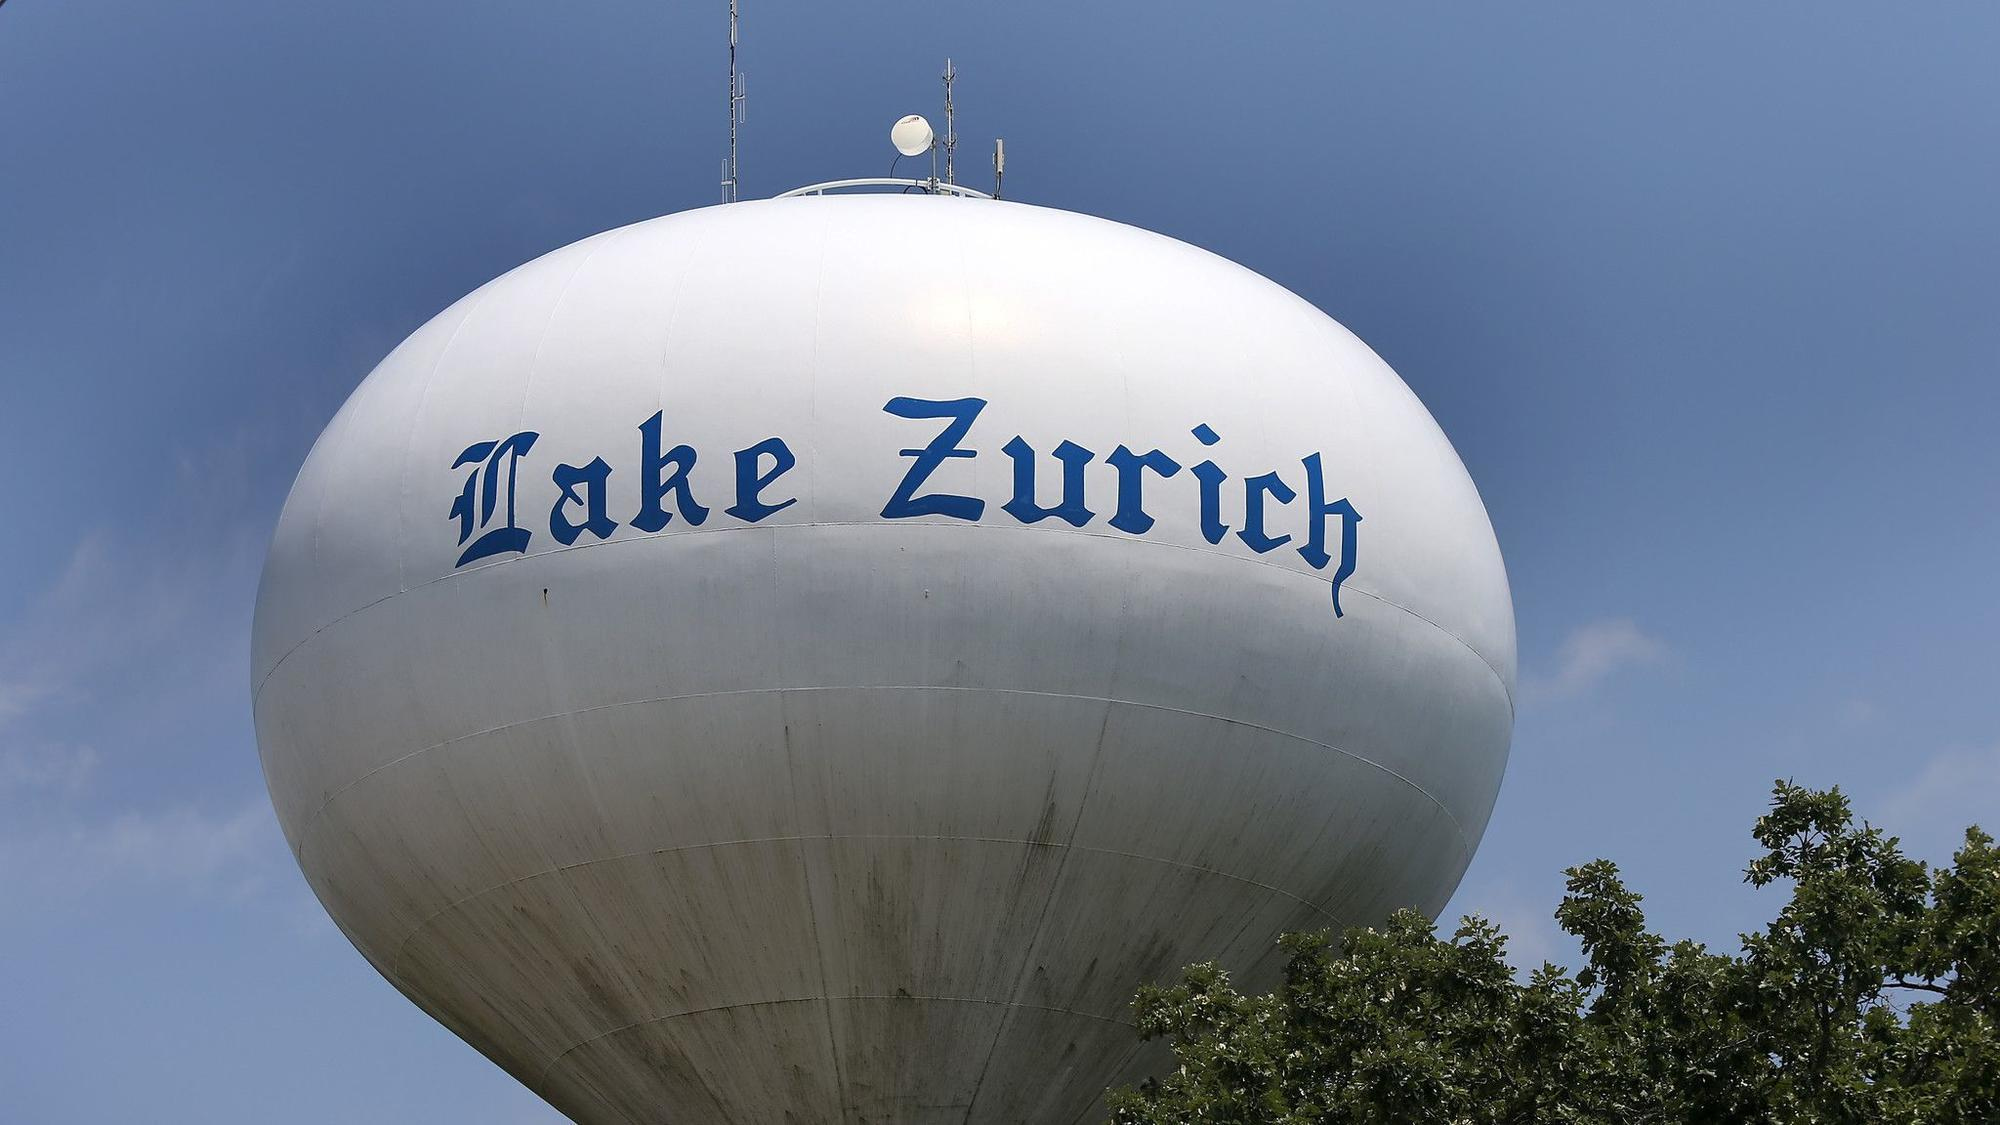 Complaints over water billing flow into Lake Zurich after officials install smar...